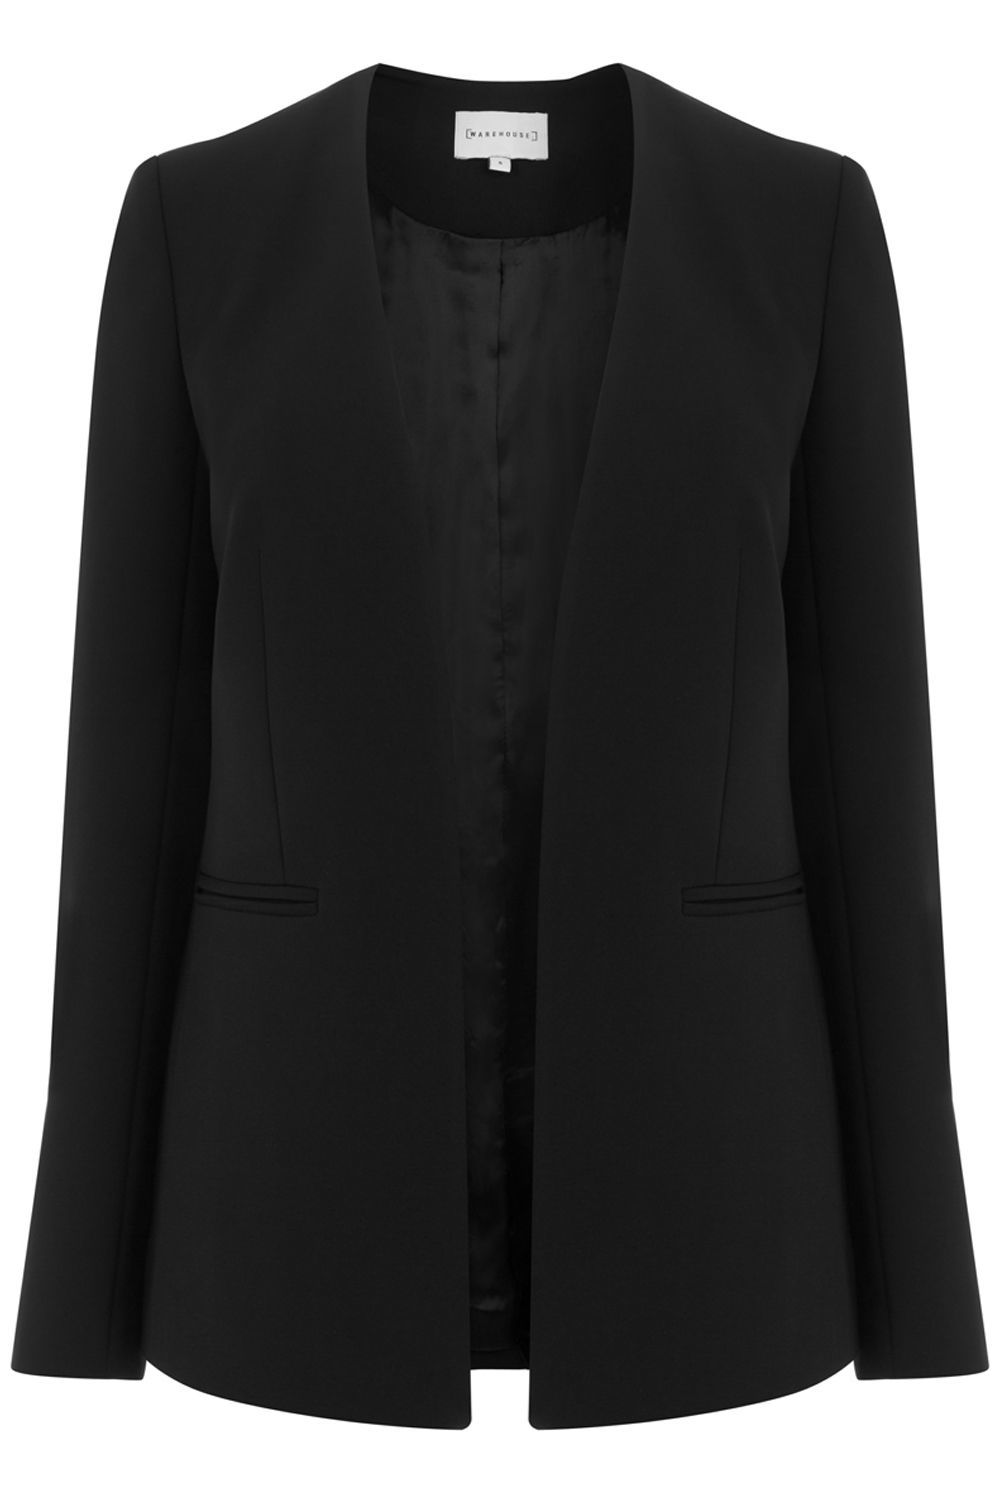 Clean Collarless Jacket, Black - pattern: plain; style: single breasted blazer; collar: round collar/collarless; predominant colour: black; occasions: work; length: standard; fit: tailored/fitted; fibres: polyester/polyamide - 100%; sleeve length: long sleeve; sleeve style: standard; texture group: crepes; collar break: low/open; pattern type: fabric; wardrobe: investment; season: a/w 2016